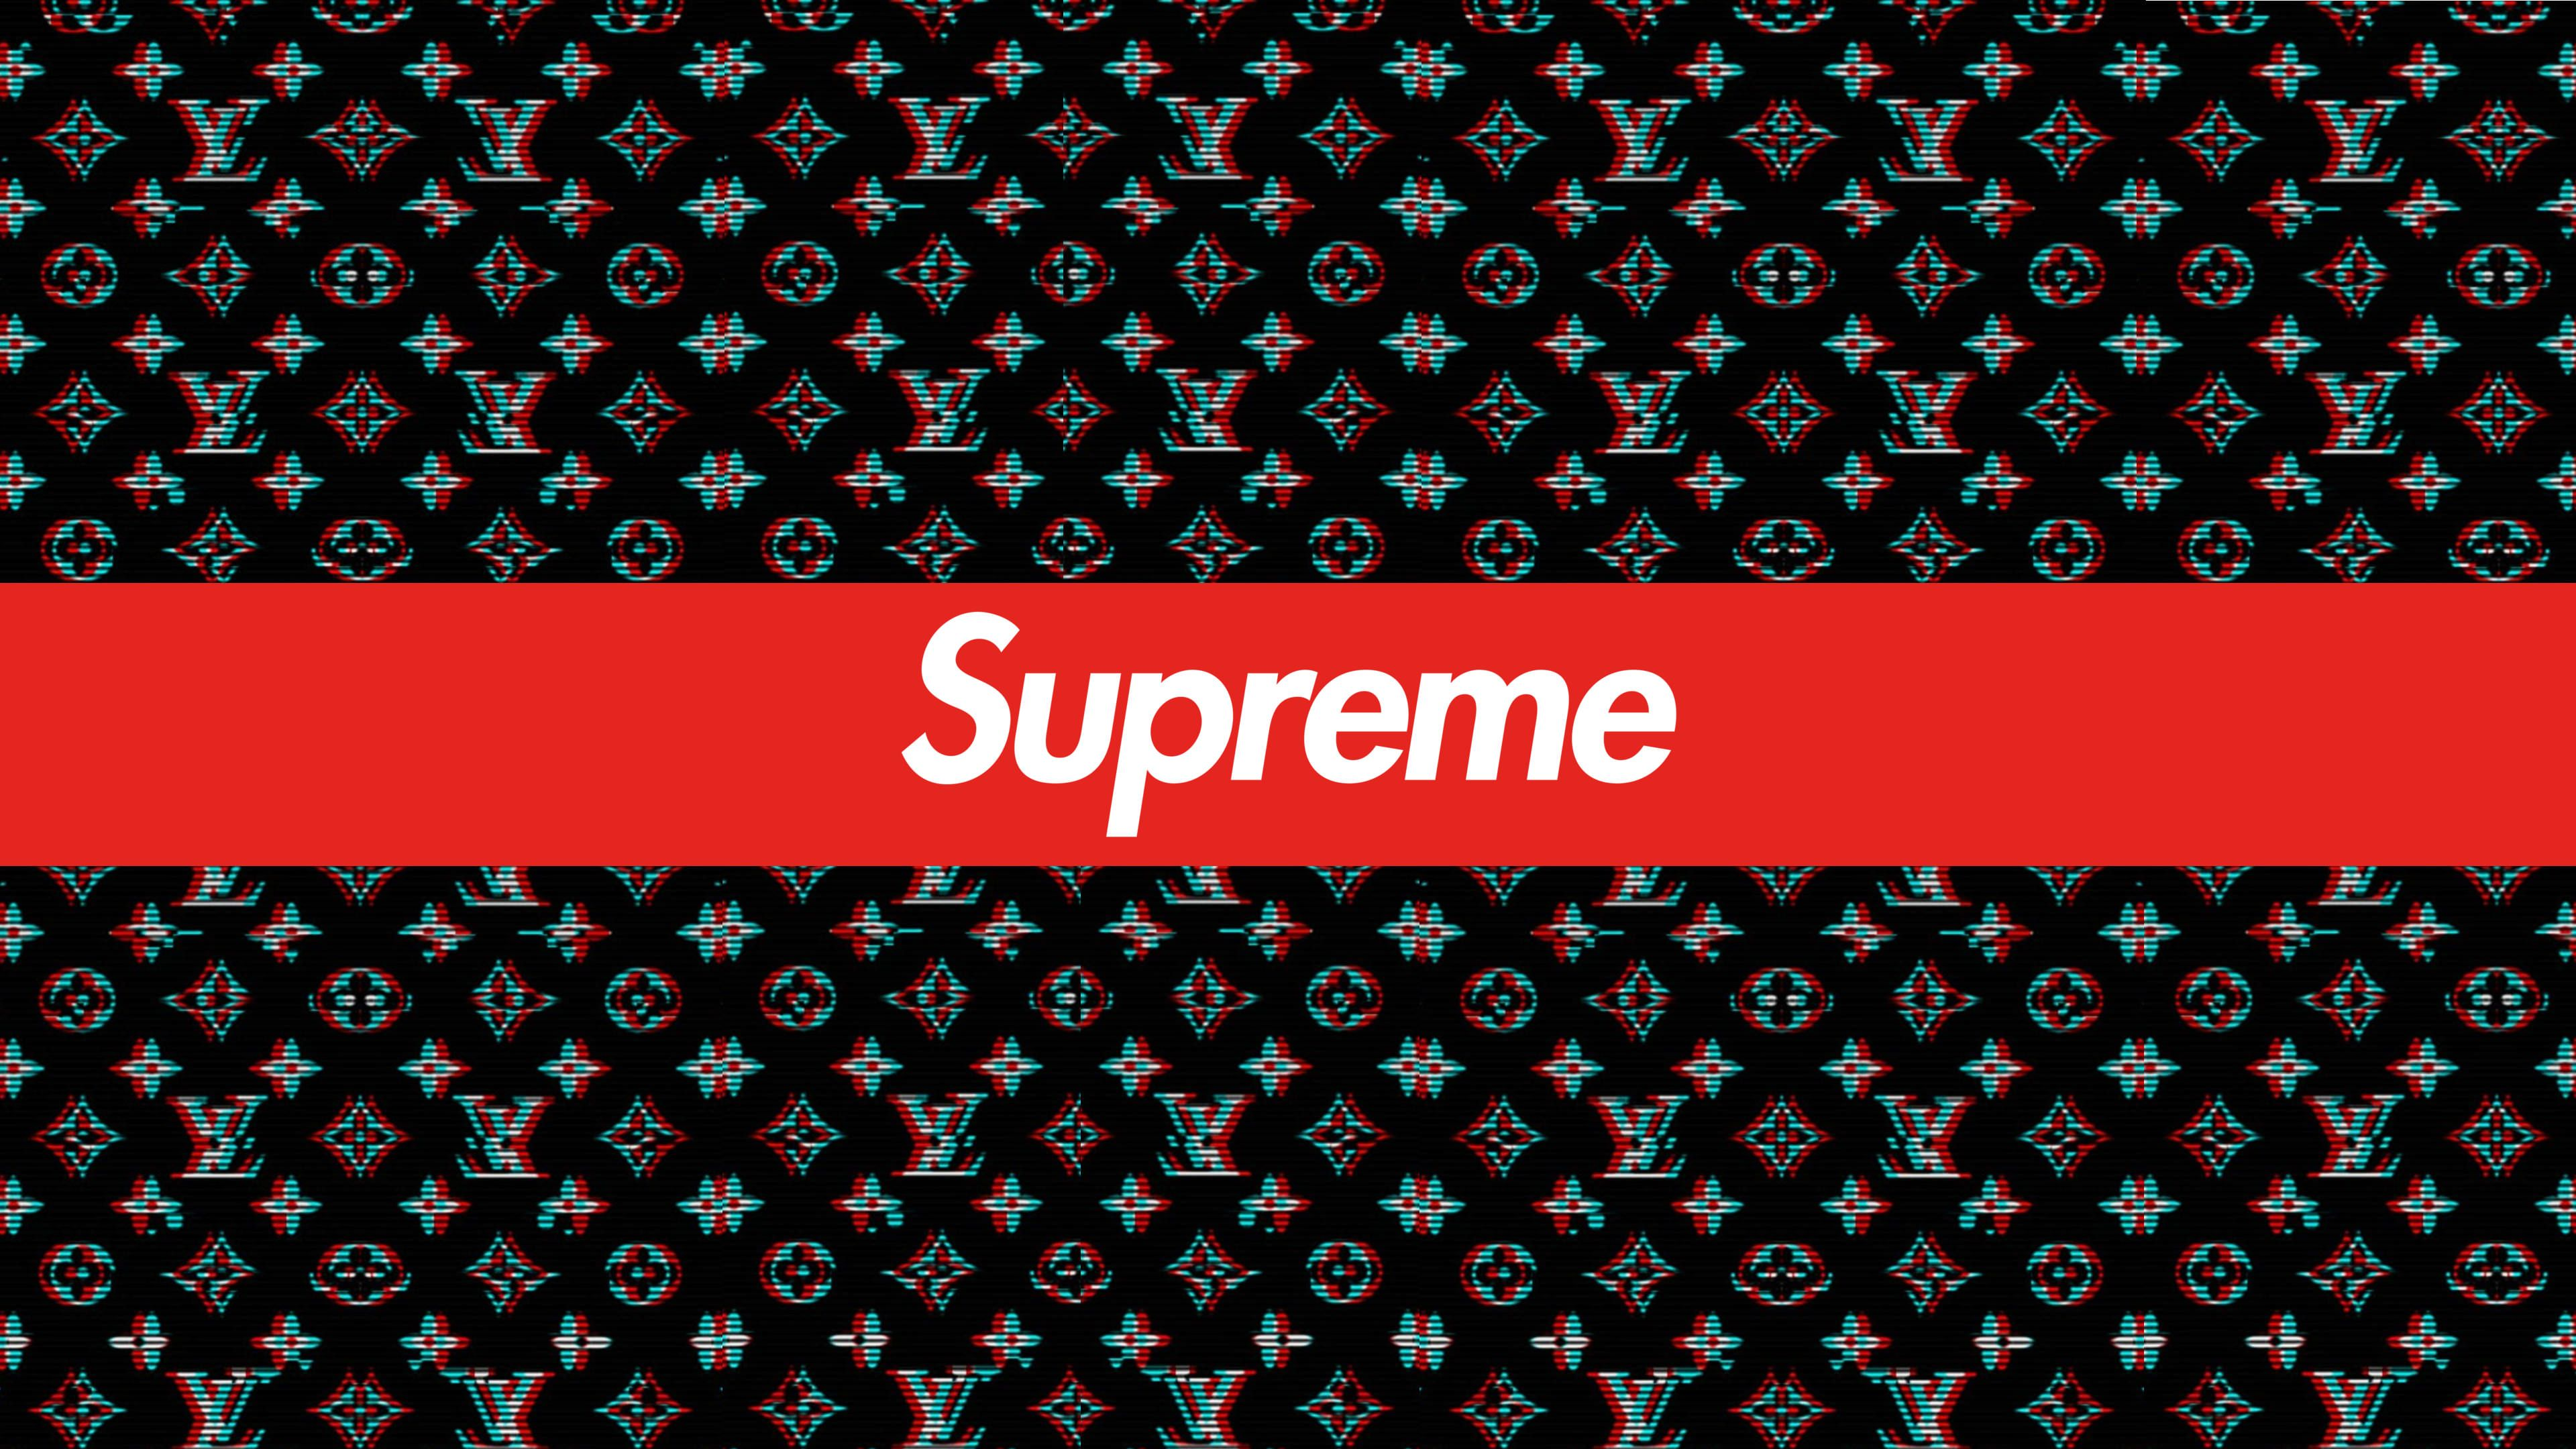 Supreme Louis Vuitton Wallpapers Top Free Supreme Louis Vuitton